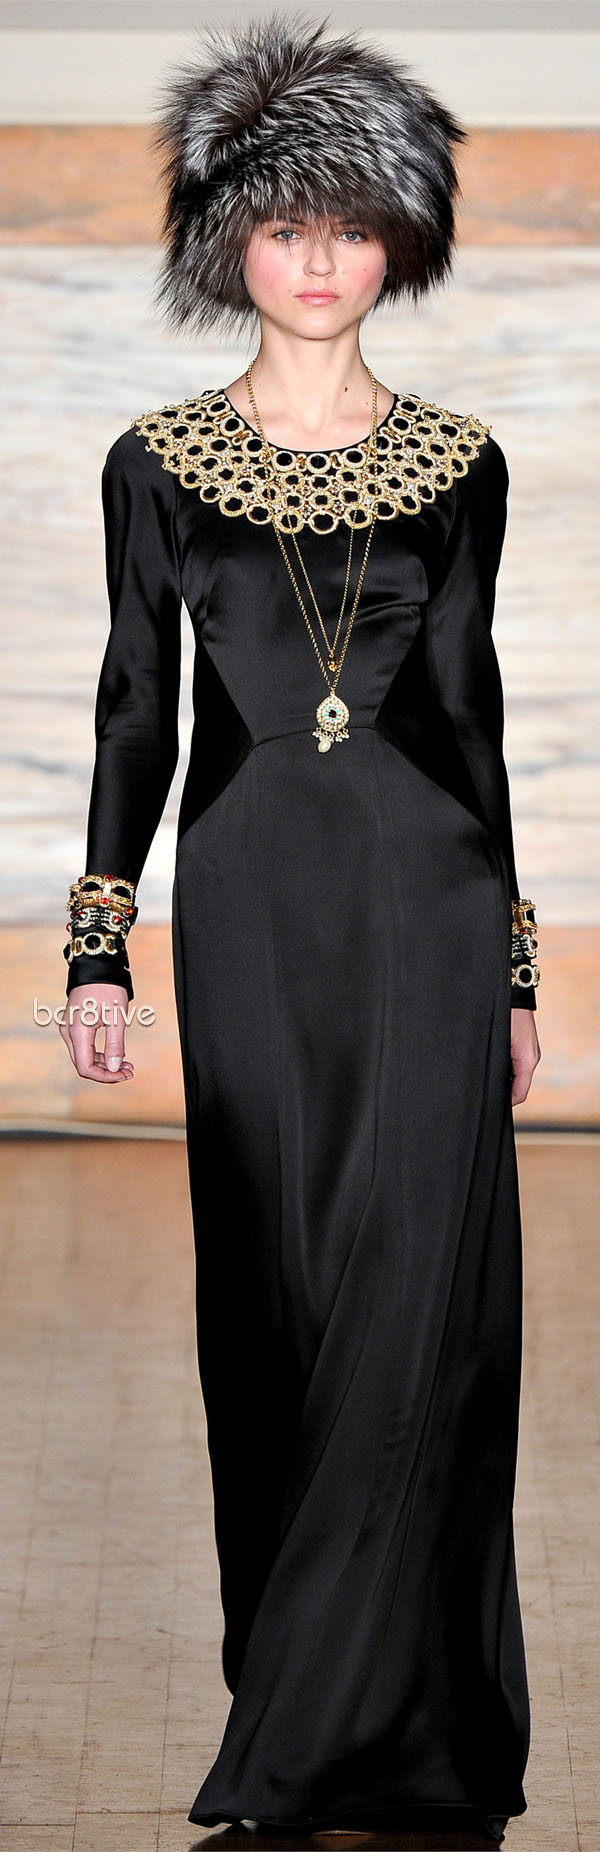 Temperley London Fall Winter 2012-13 Collection _027